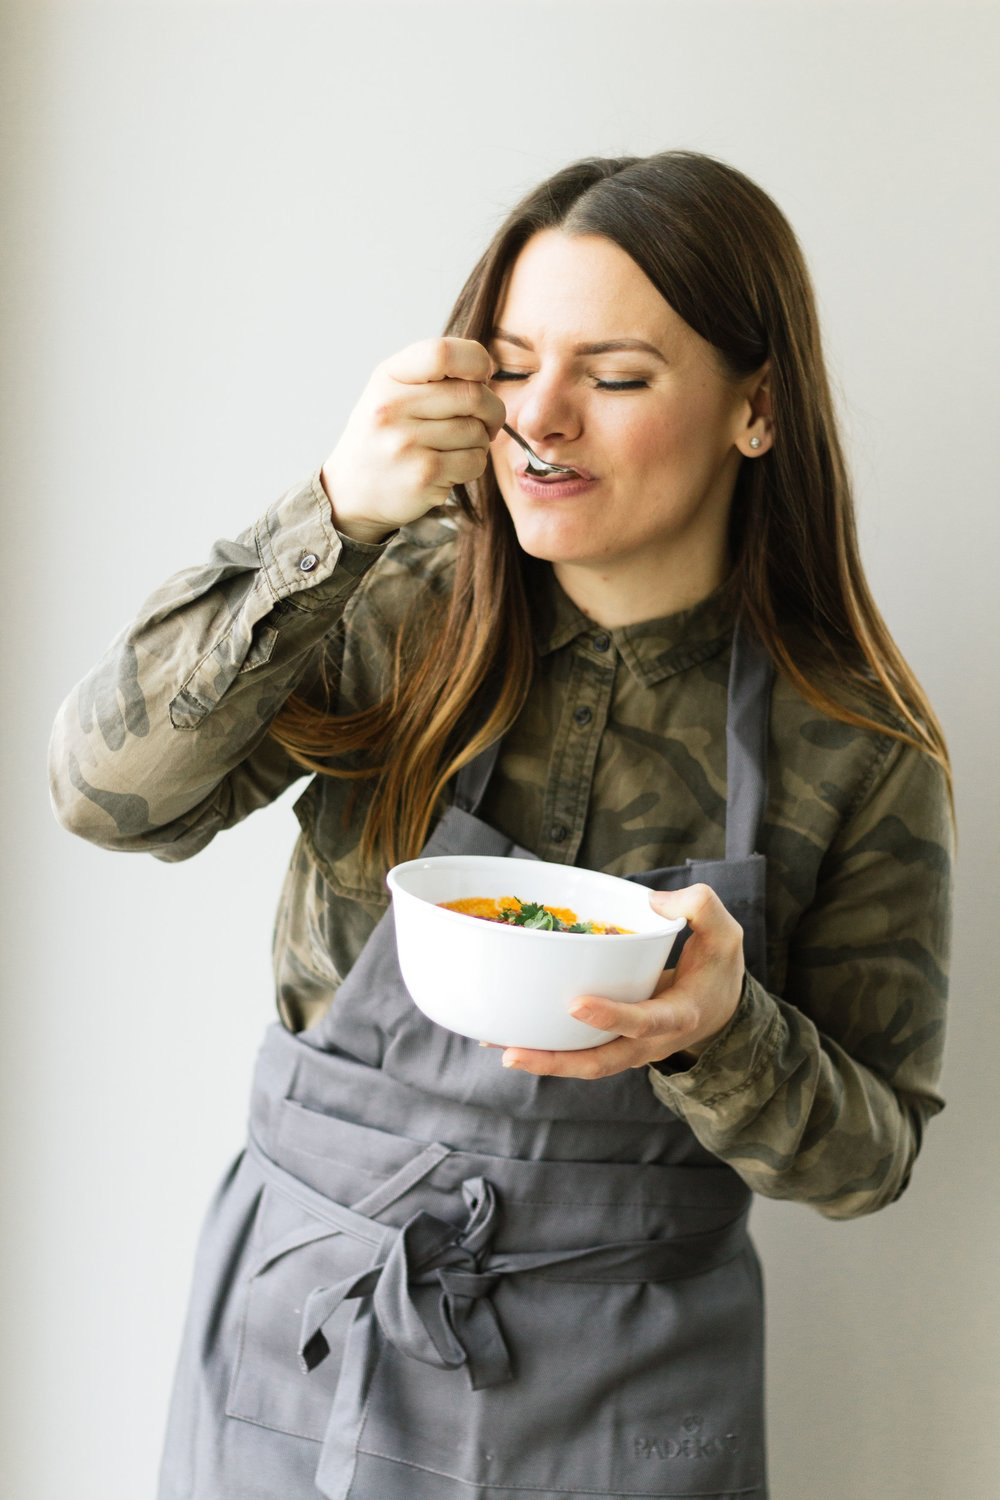 Meet Meaghan! - A passion for nutrition + a flair for cooking!bridging the gap between healthy eating & real, messy, everyday life. Meaghan creates meals that are nourishing and delicious.certified in the field of holistic nutrition plus 10 years of culinary experience, meaghan brings her knowledge and her craft together to create better prep.